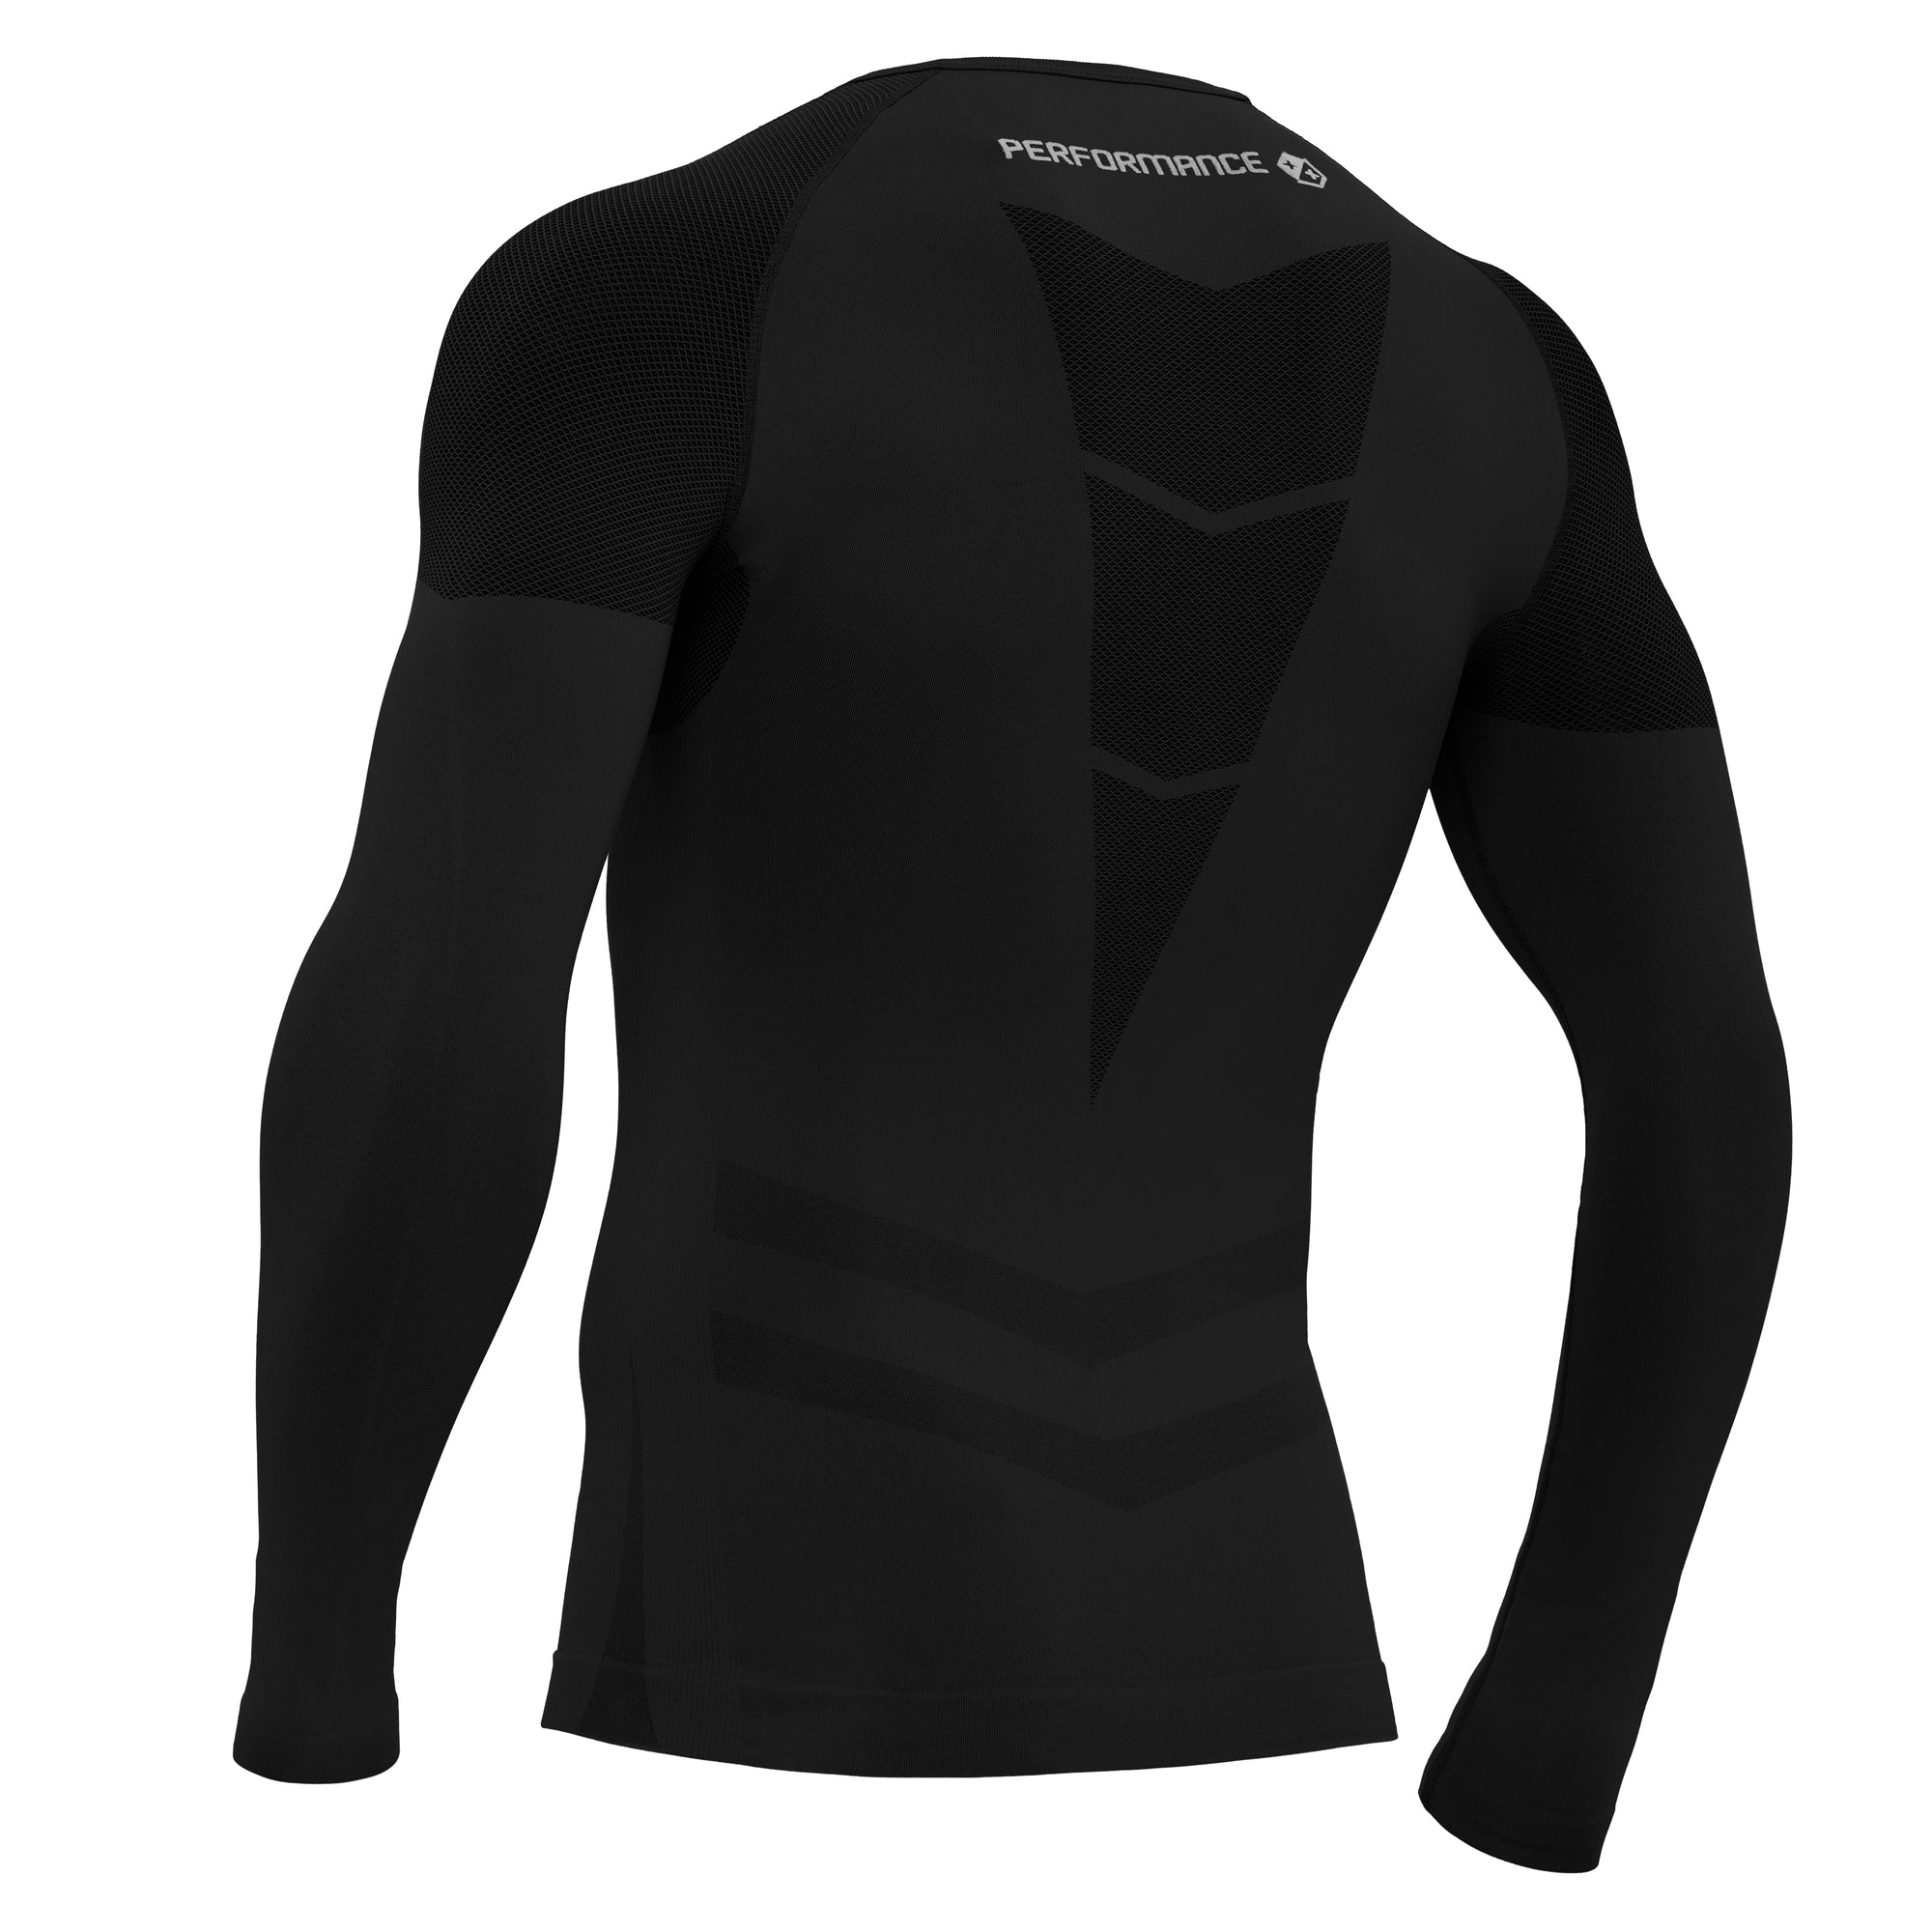 Macron Performance Men's Compression Top Long-Sleeve - Final Sale - ITA Sports Shop